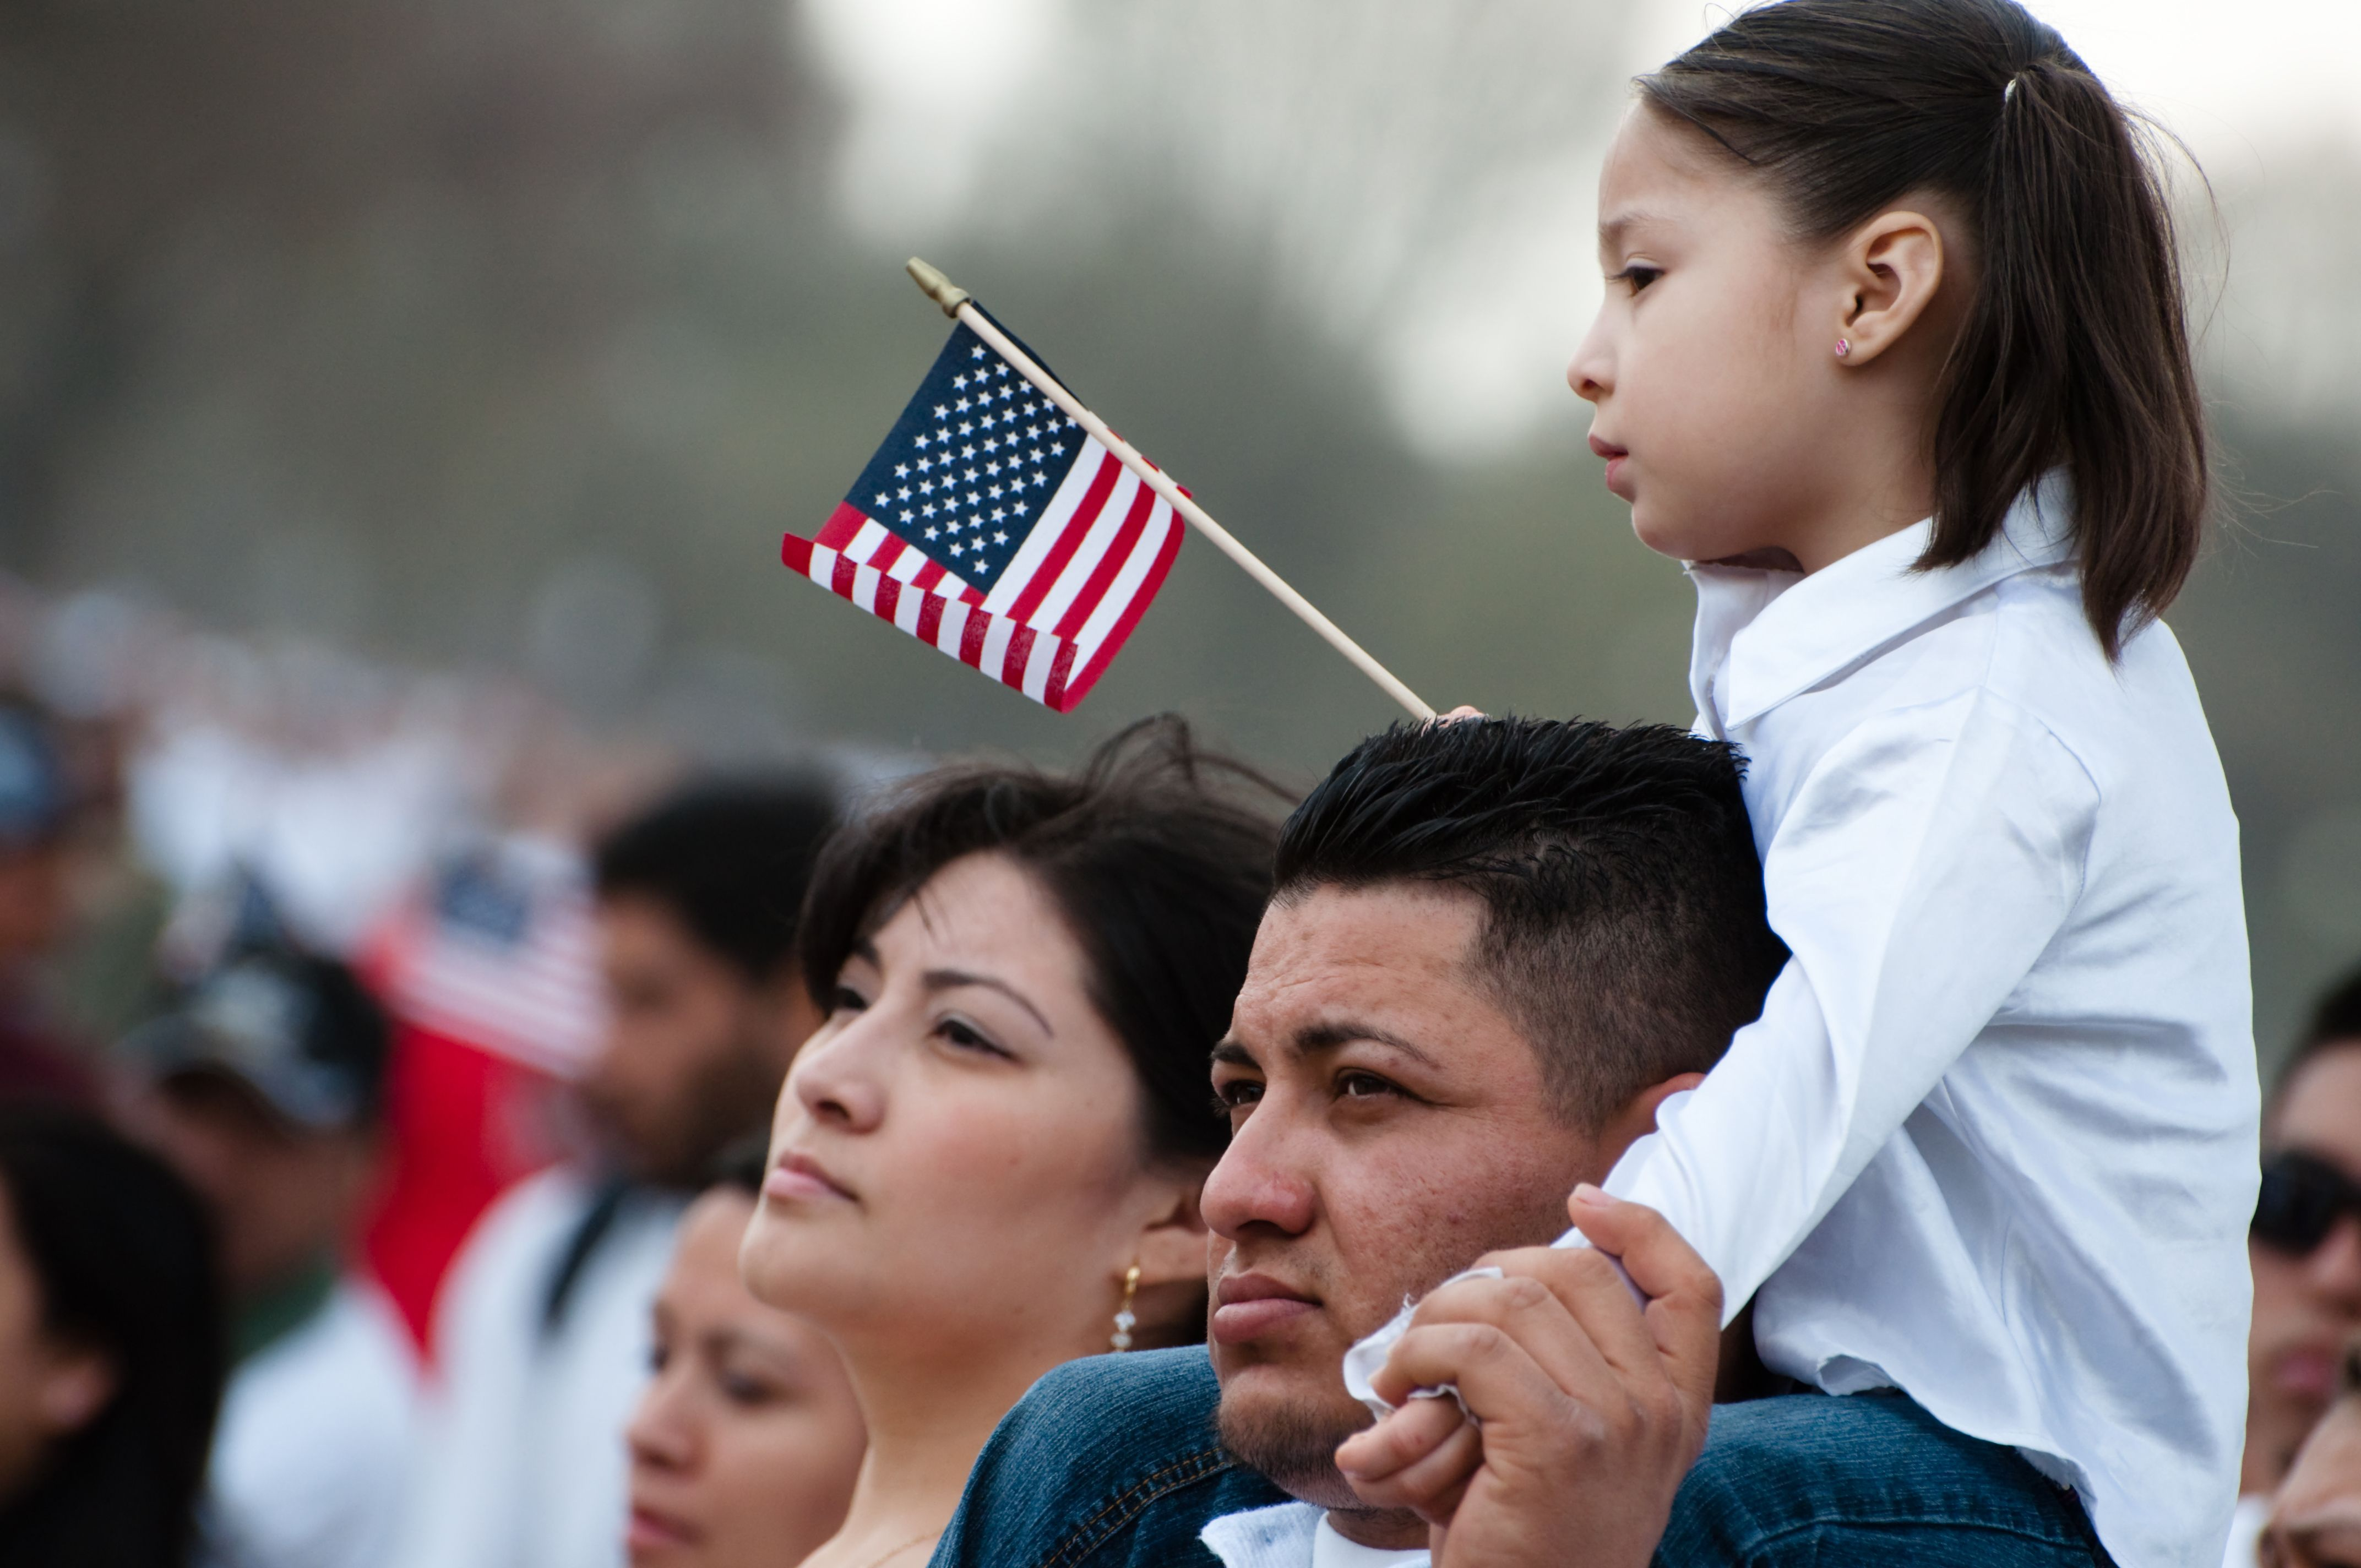 Immigrants now must rely on Supreme Court for deportation relief